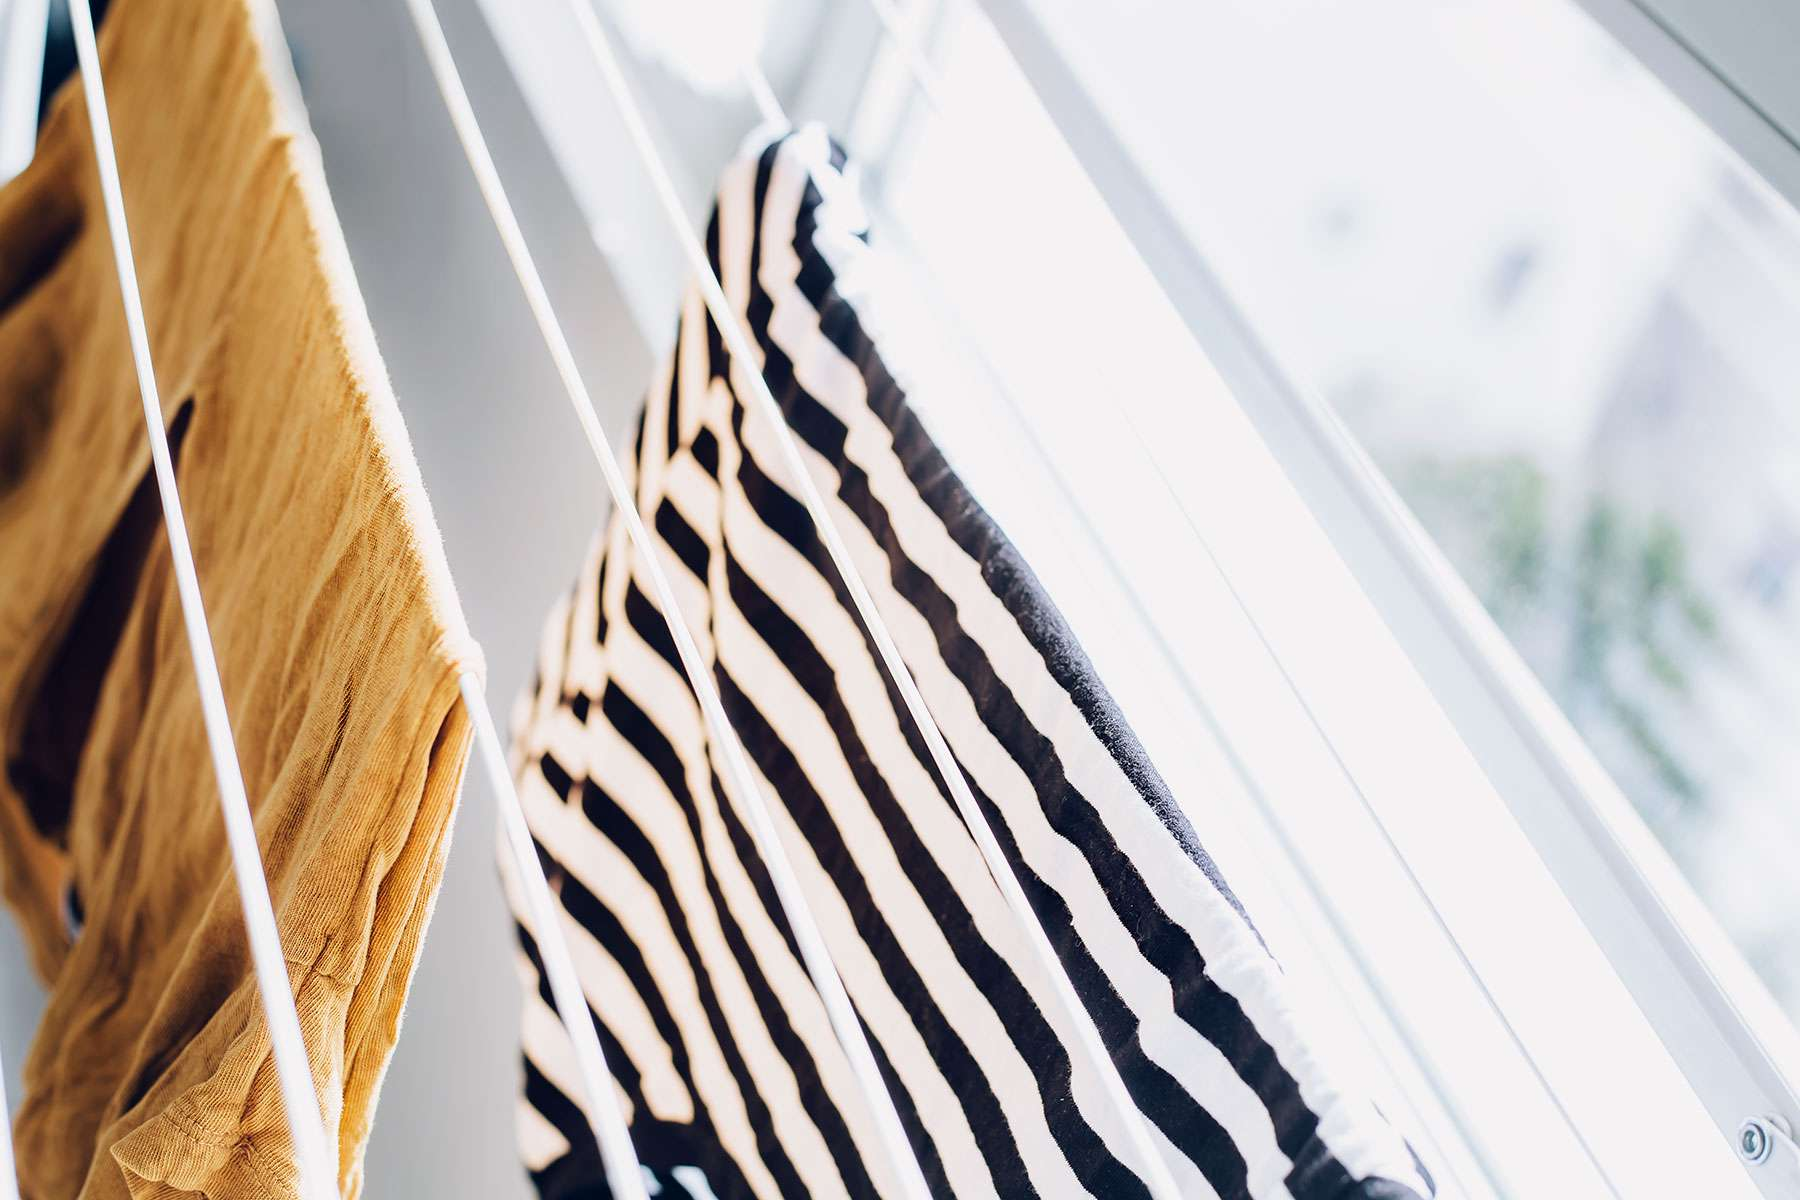 items drying on a rack